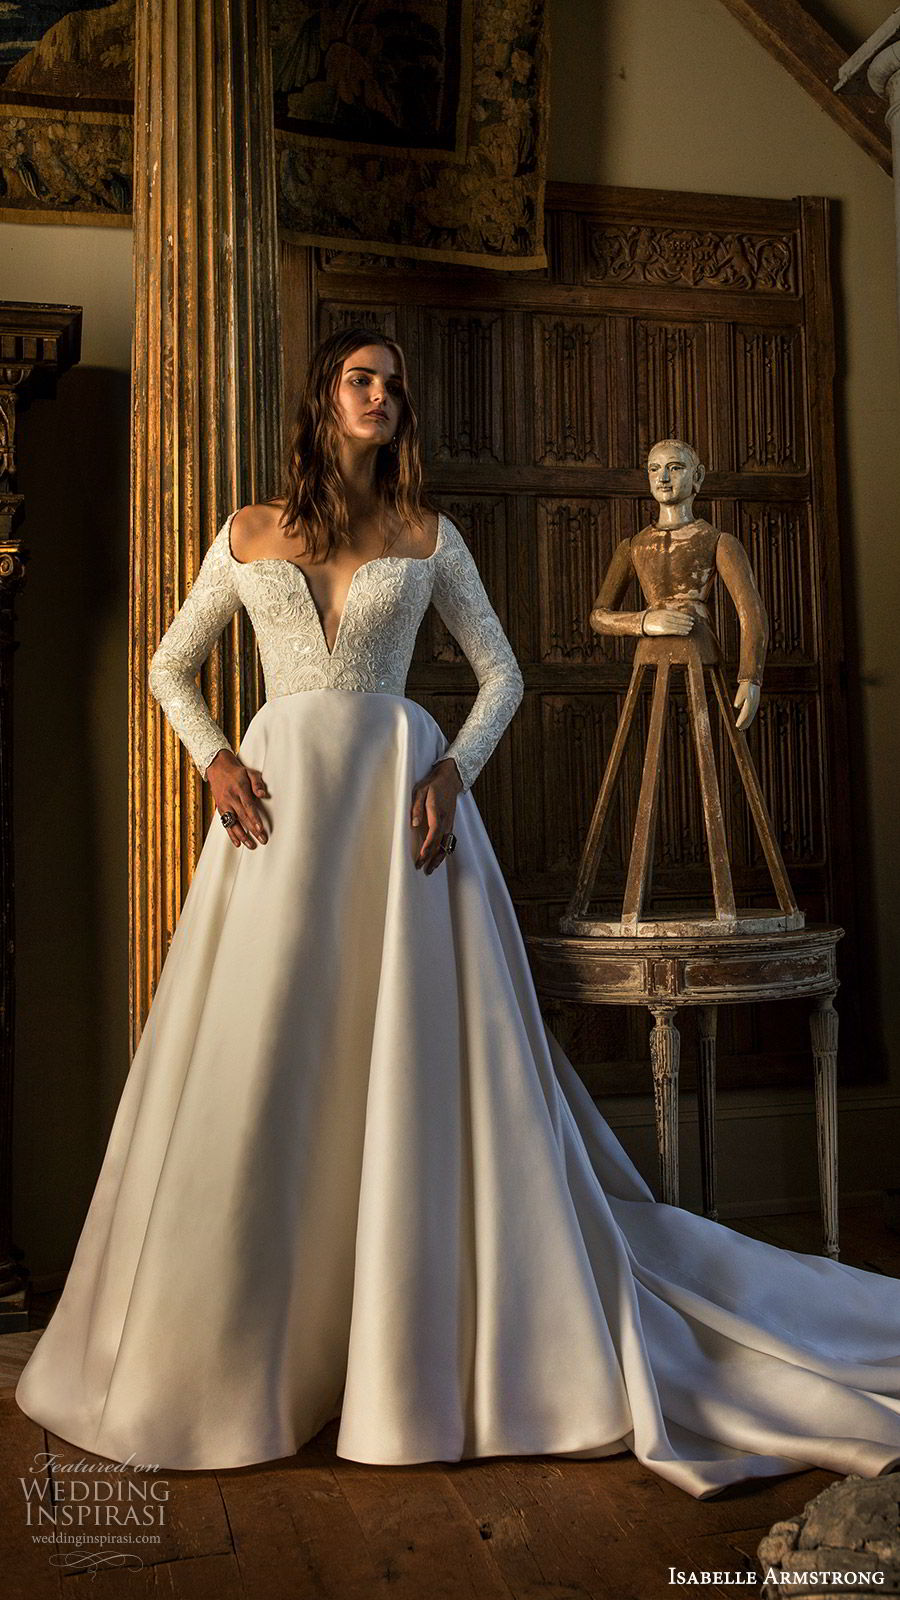 isabelle armstrong fall 2019 bridal long sleeves split square neckline embellished bodice a line ball gown wedding dress (2) romantic modern mv